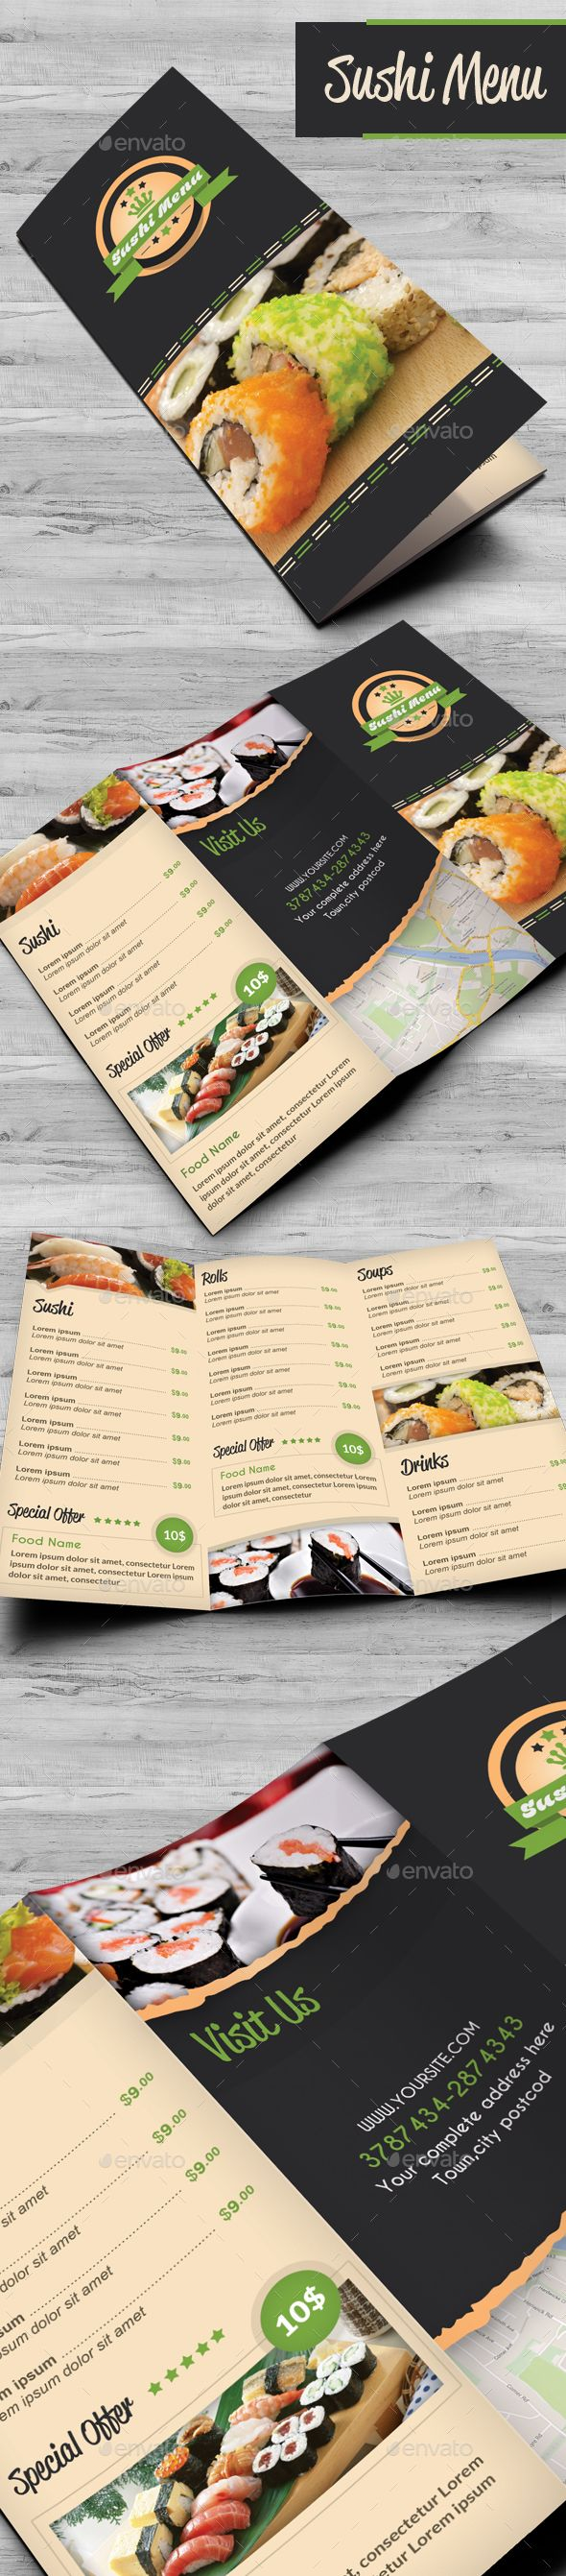 Sushi Food Menu – How to Make a Food Menu on Microsoft Word